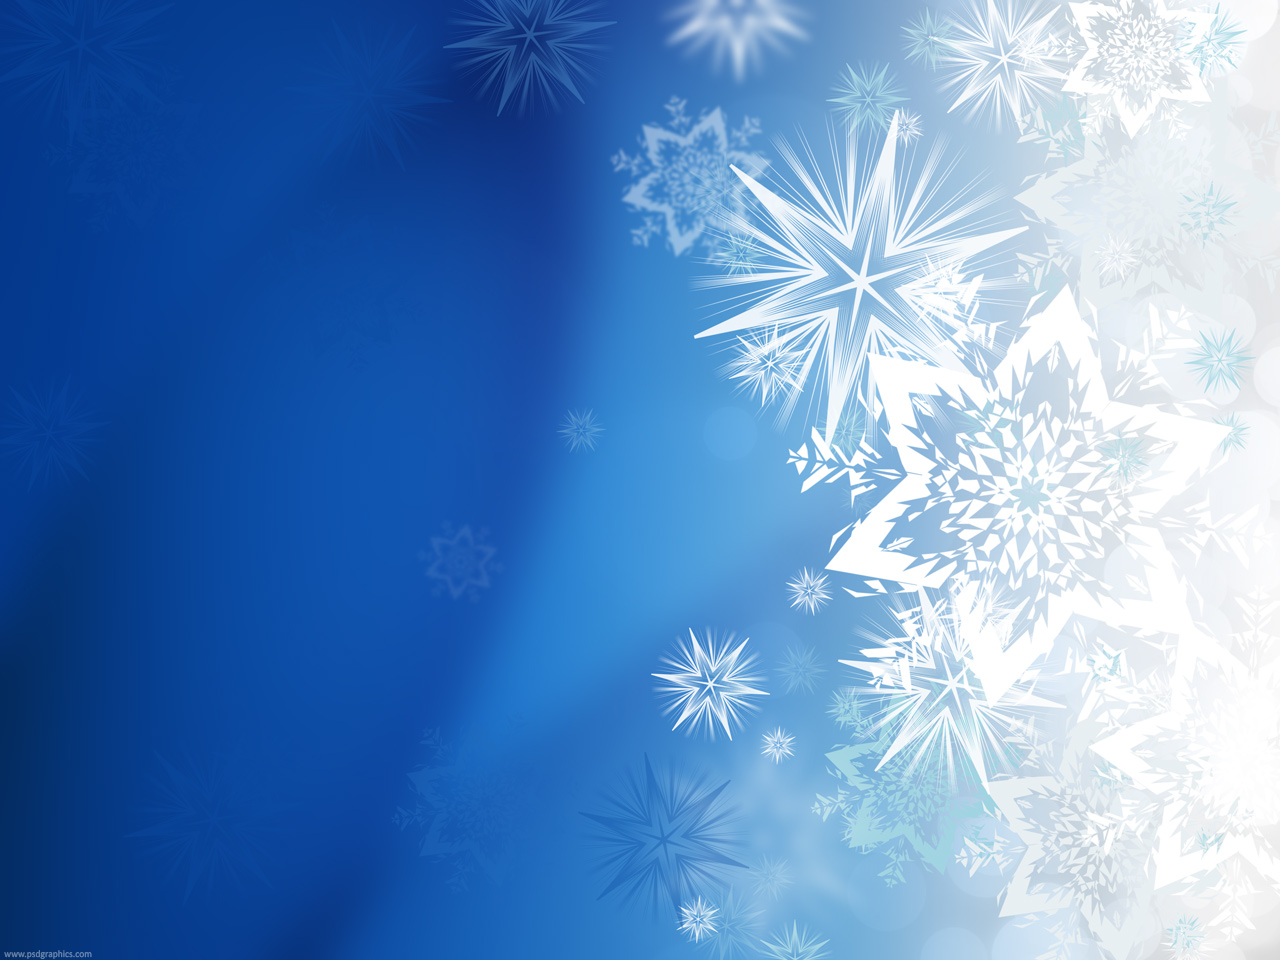 Medium size preview 1280x960px Winter snowflakes background 1280x960